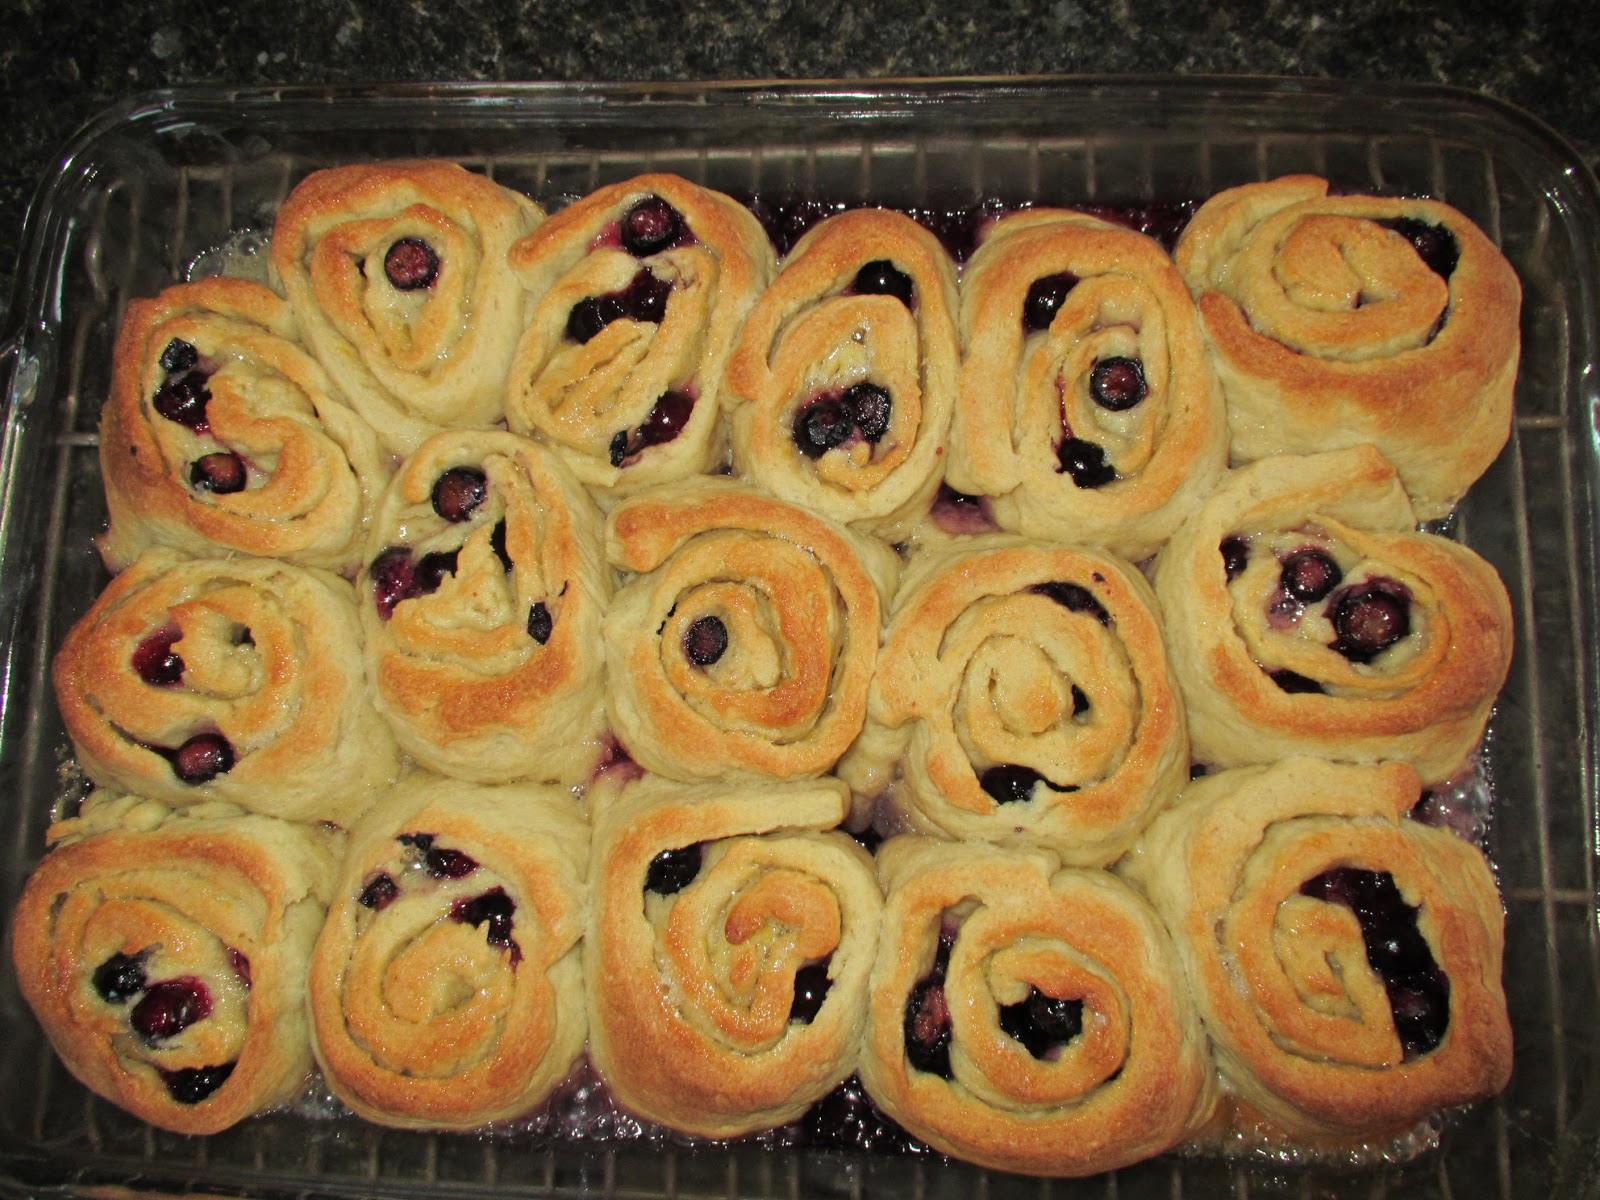 Successfully Gluten Free! : Browse by Picture: Sweet Recipes